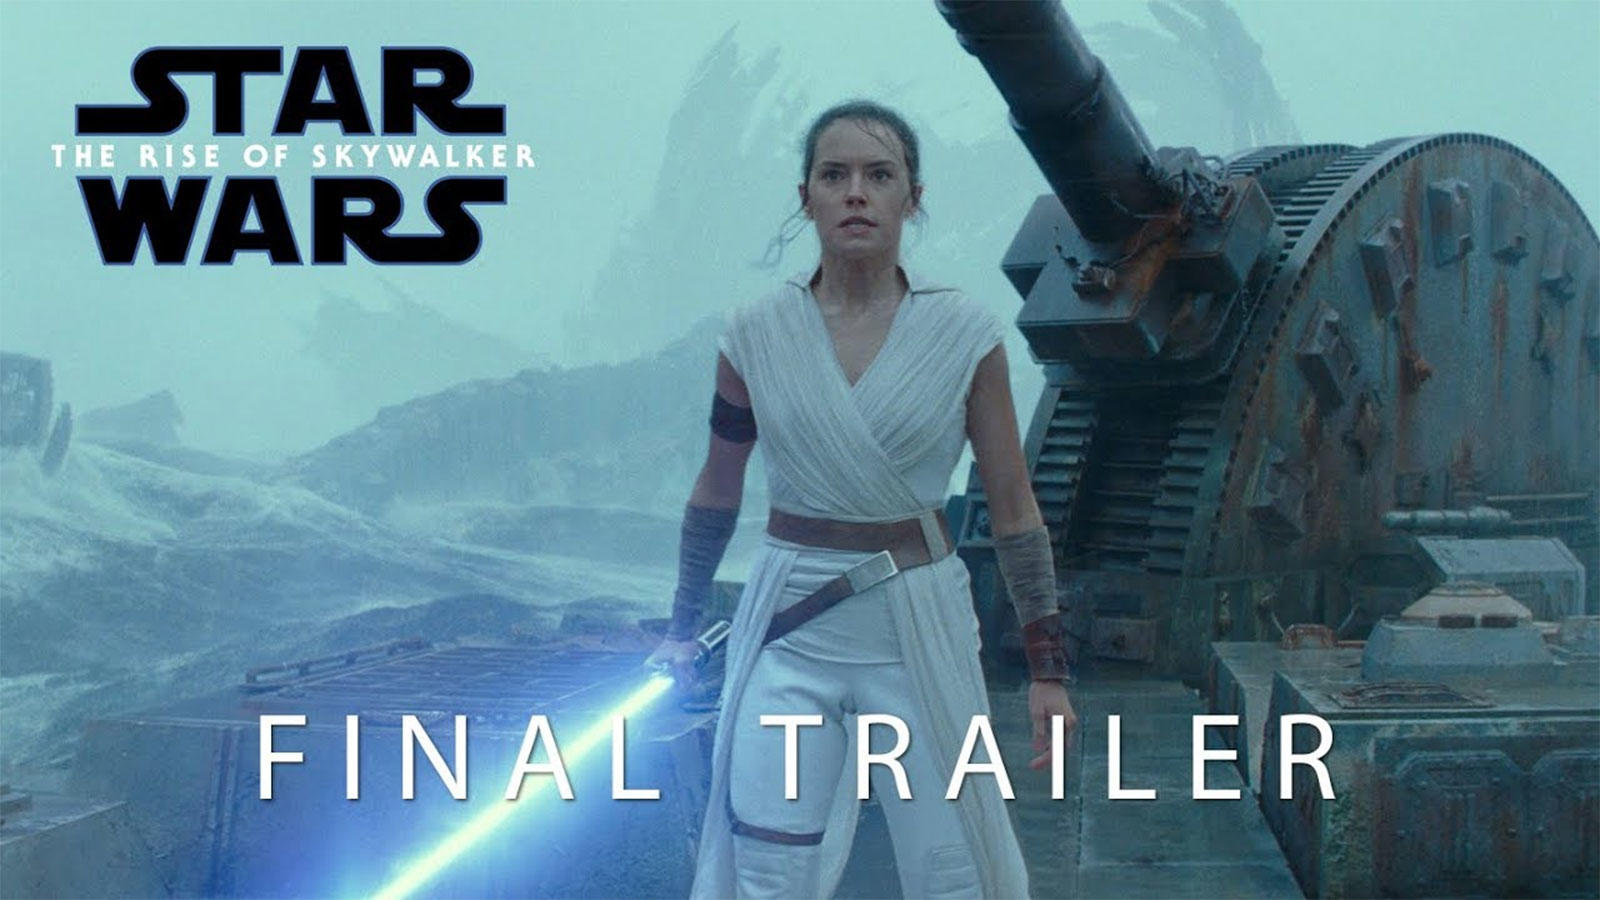 Star Wars: The Rise Of Skywalker - Official Trailer